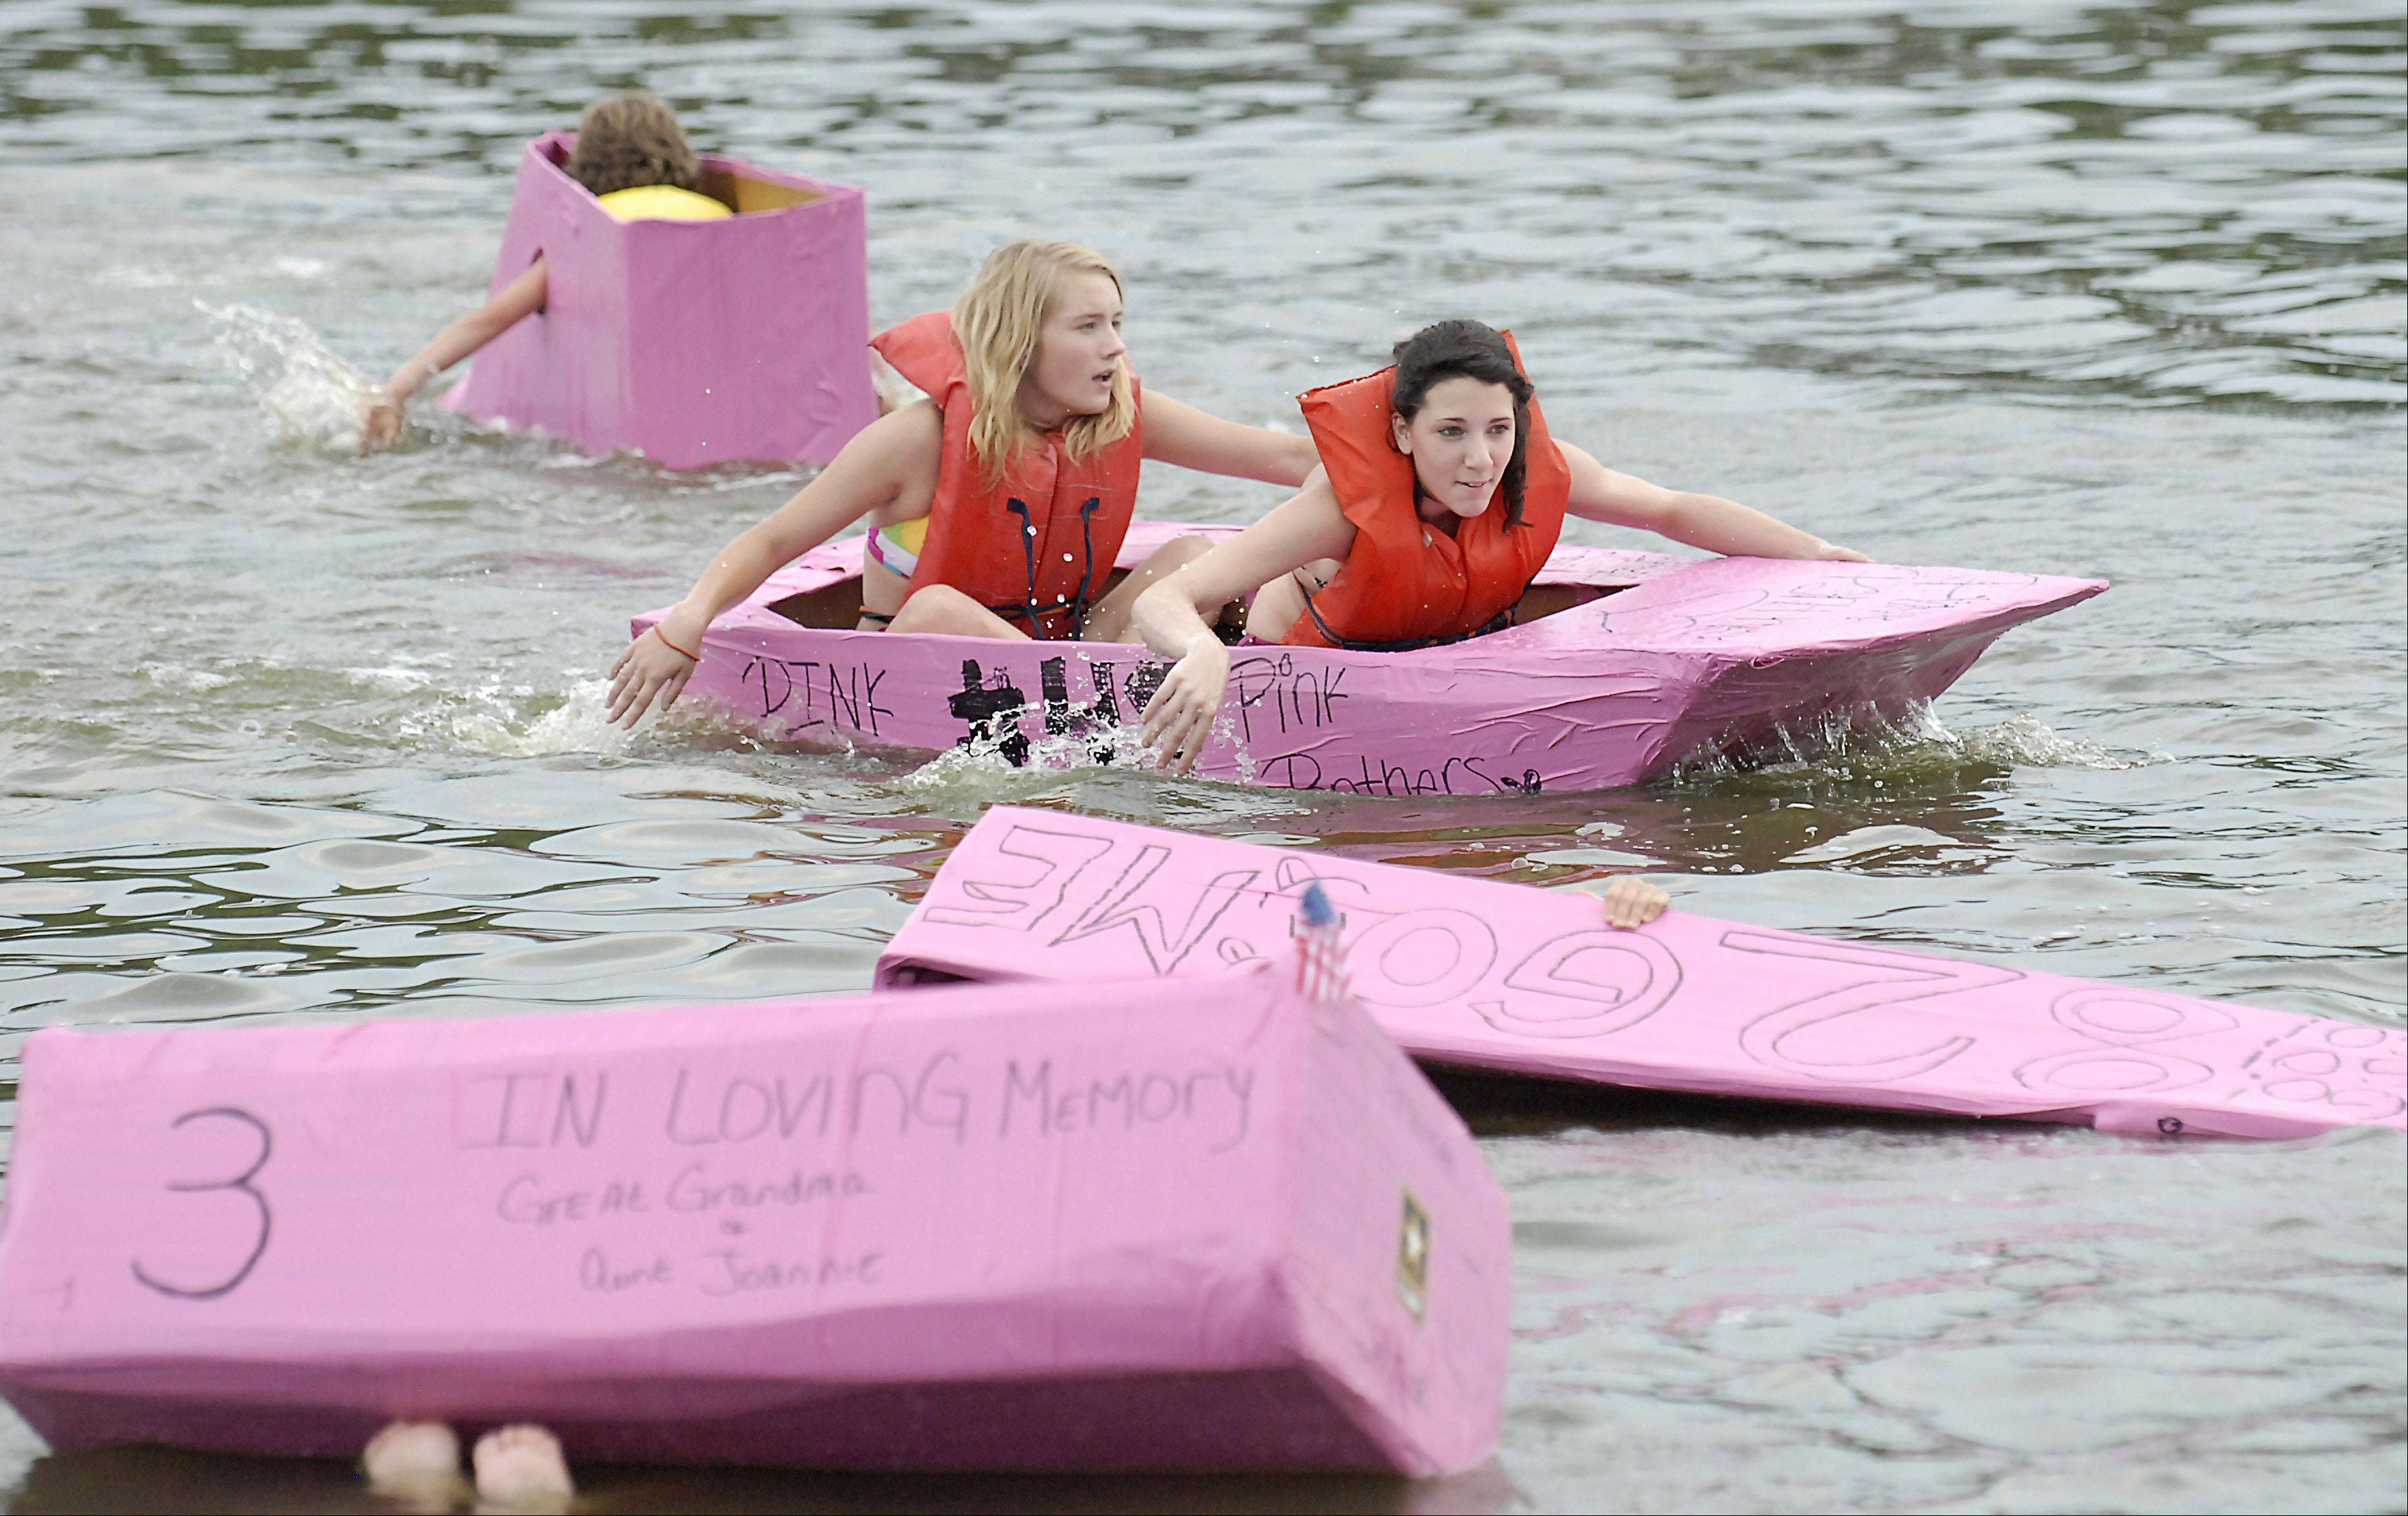 McKenna Moss, left, and Holly Gagliano, both 12 and from Algonquin, make their way through wreckage to be the first place winners in the 12 and under category of the Cardboard Boat Regatta at the 53rd Algonquin Founders� Days on Thursday. This is the fourth year the duo have been in the race.